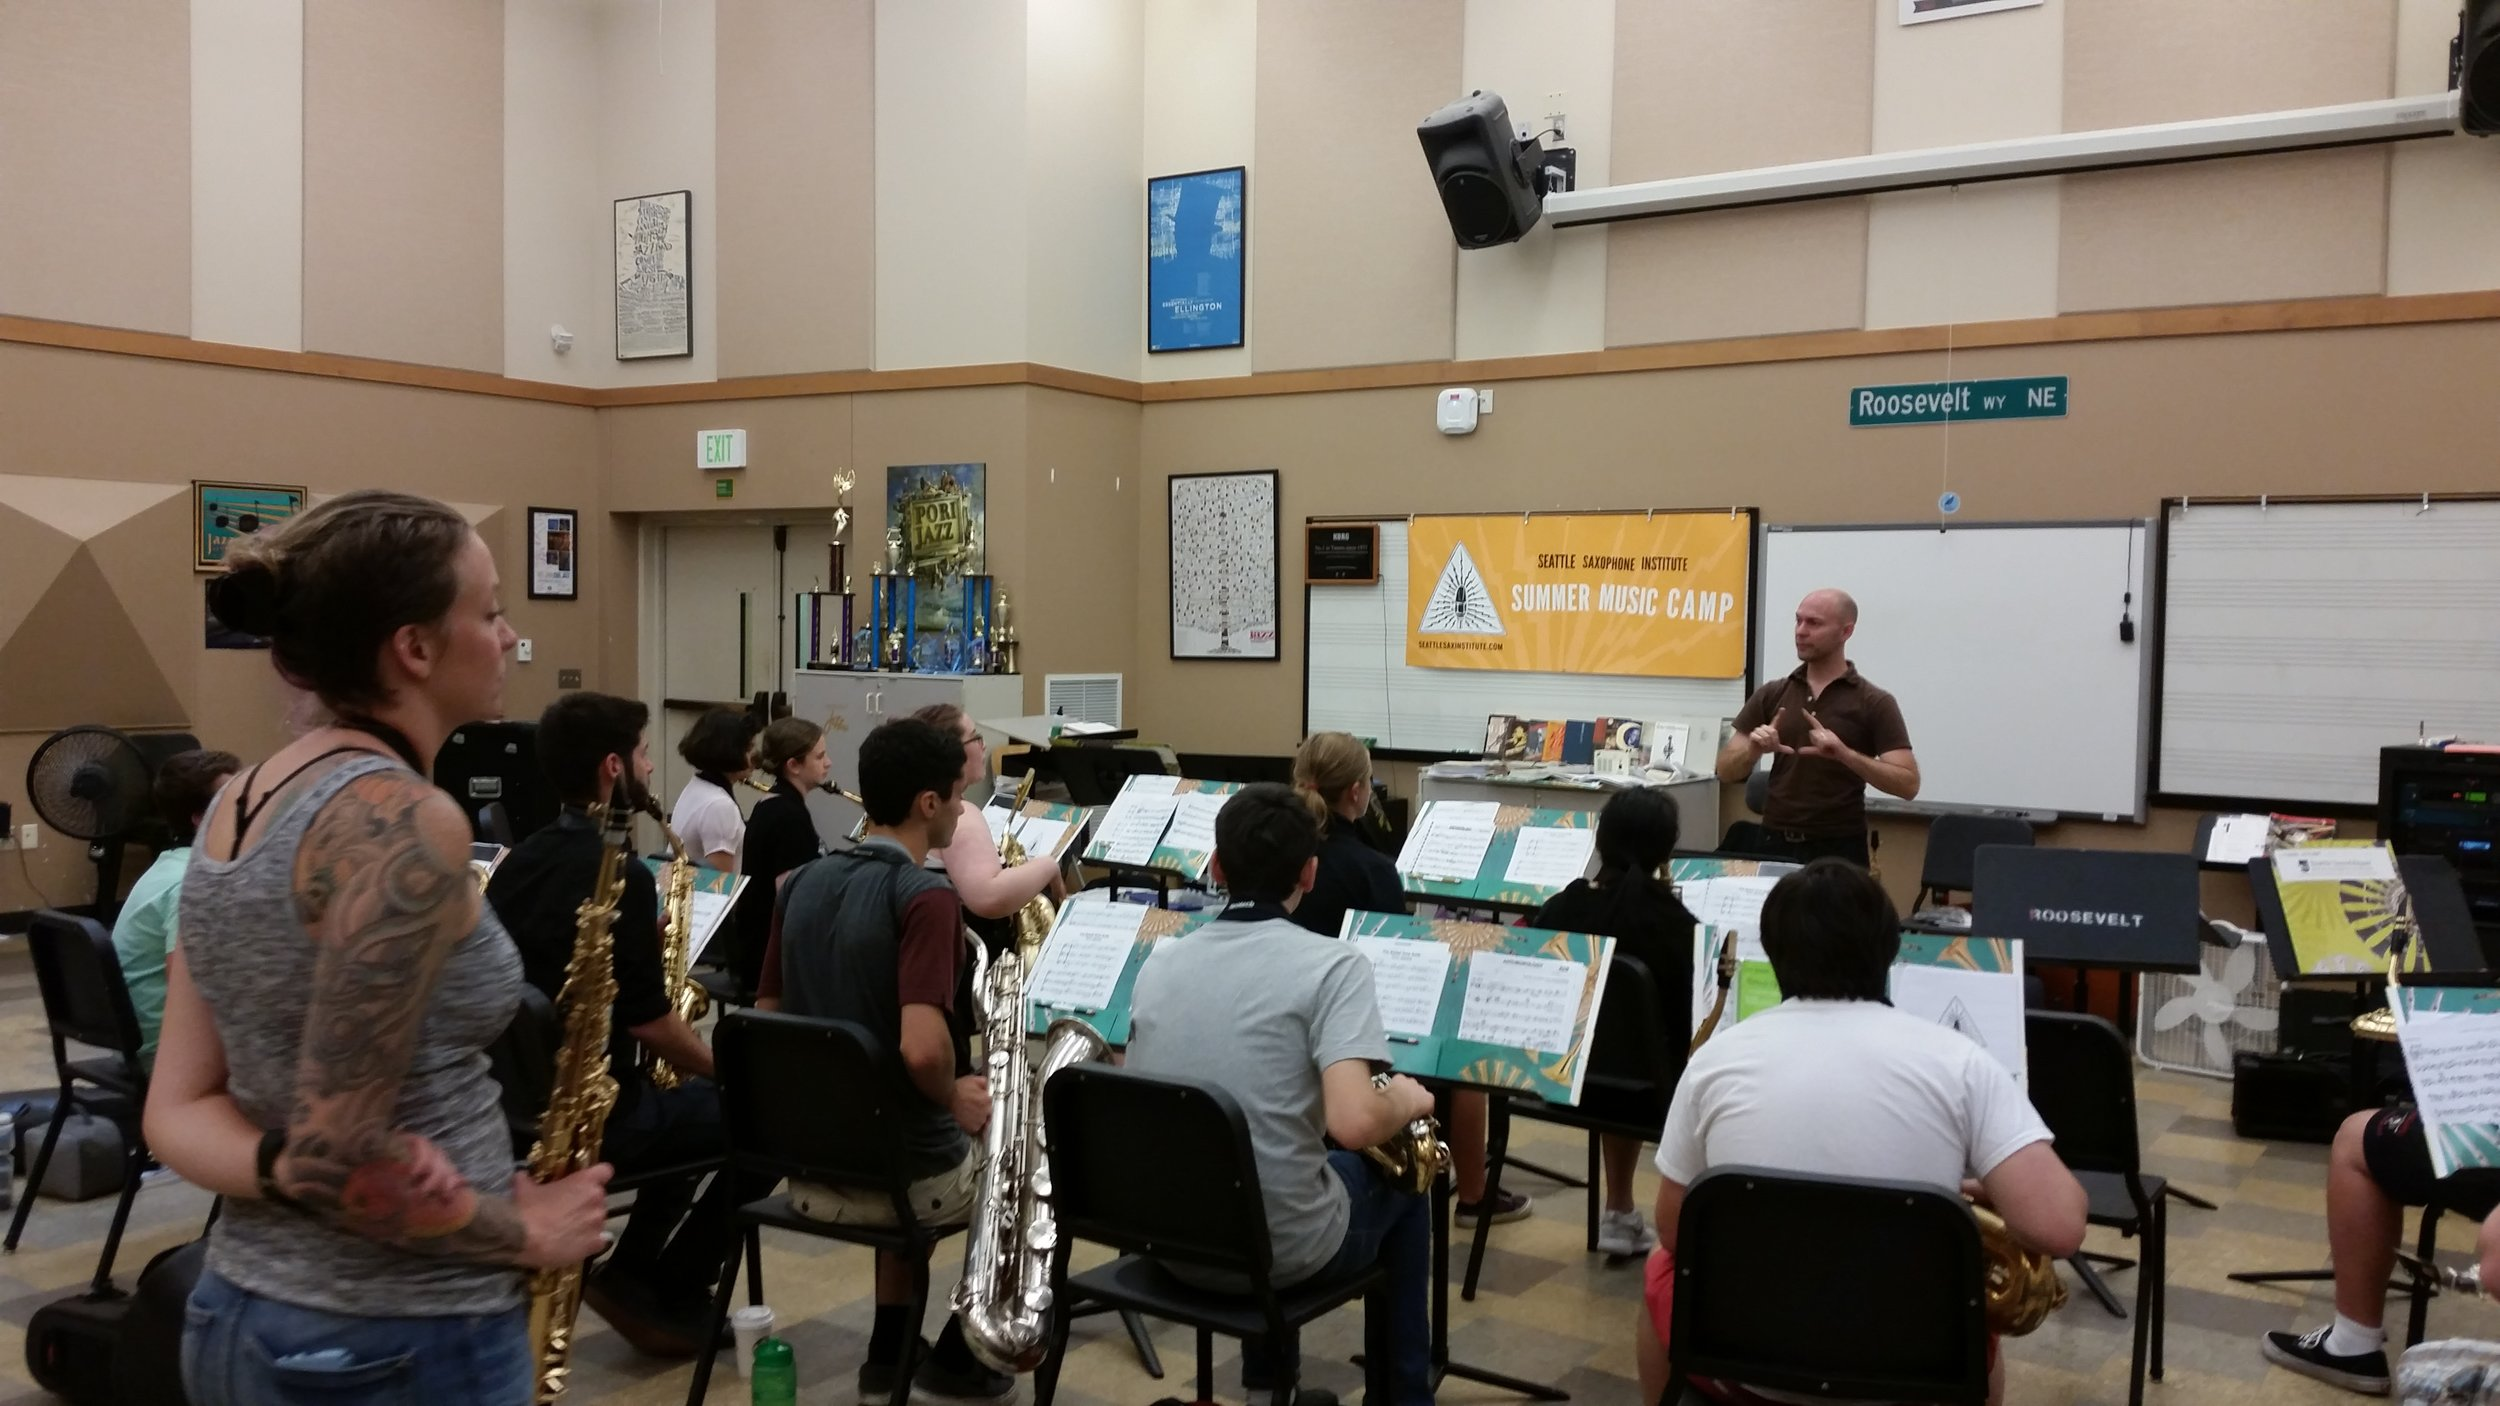 Sax Institute coach Kate Olson looks on and learns along alongside students during a guest artist presentation and performance